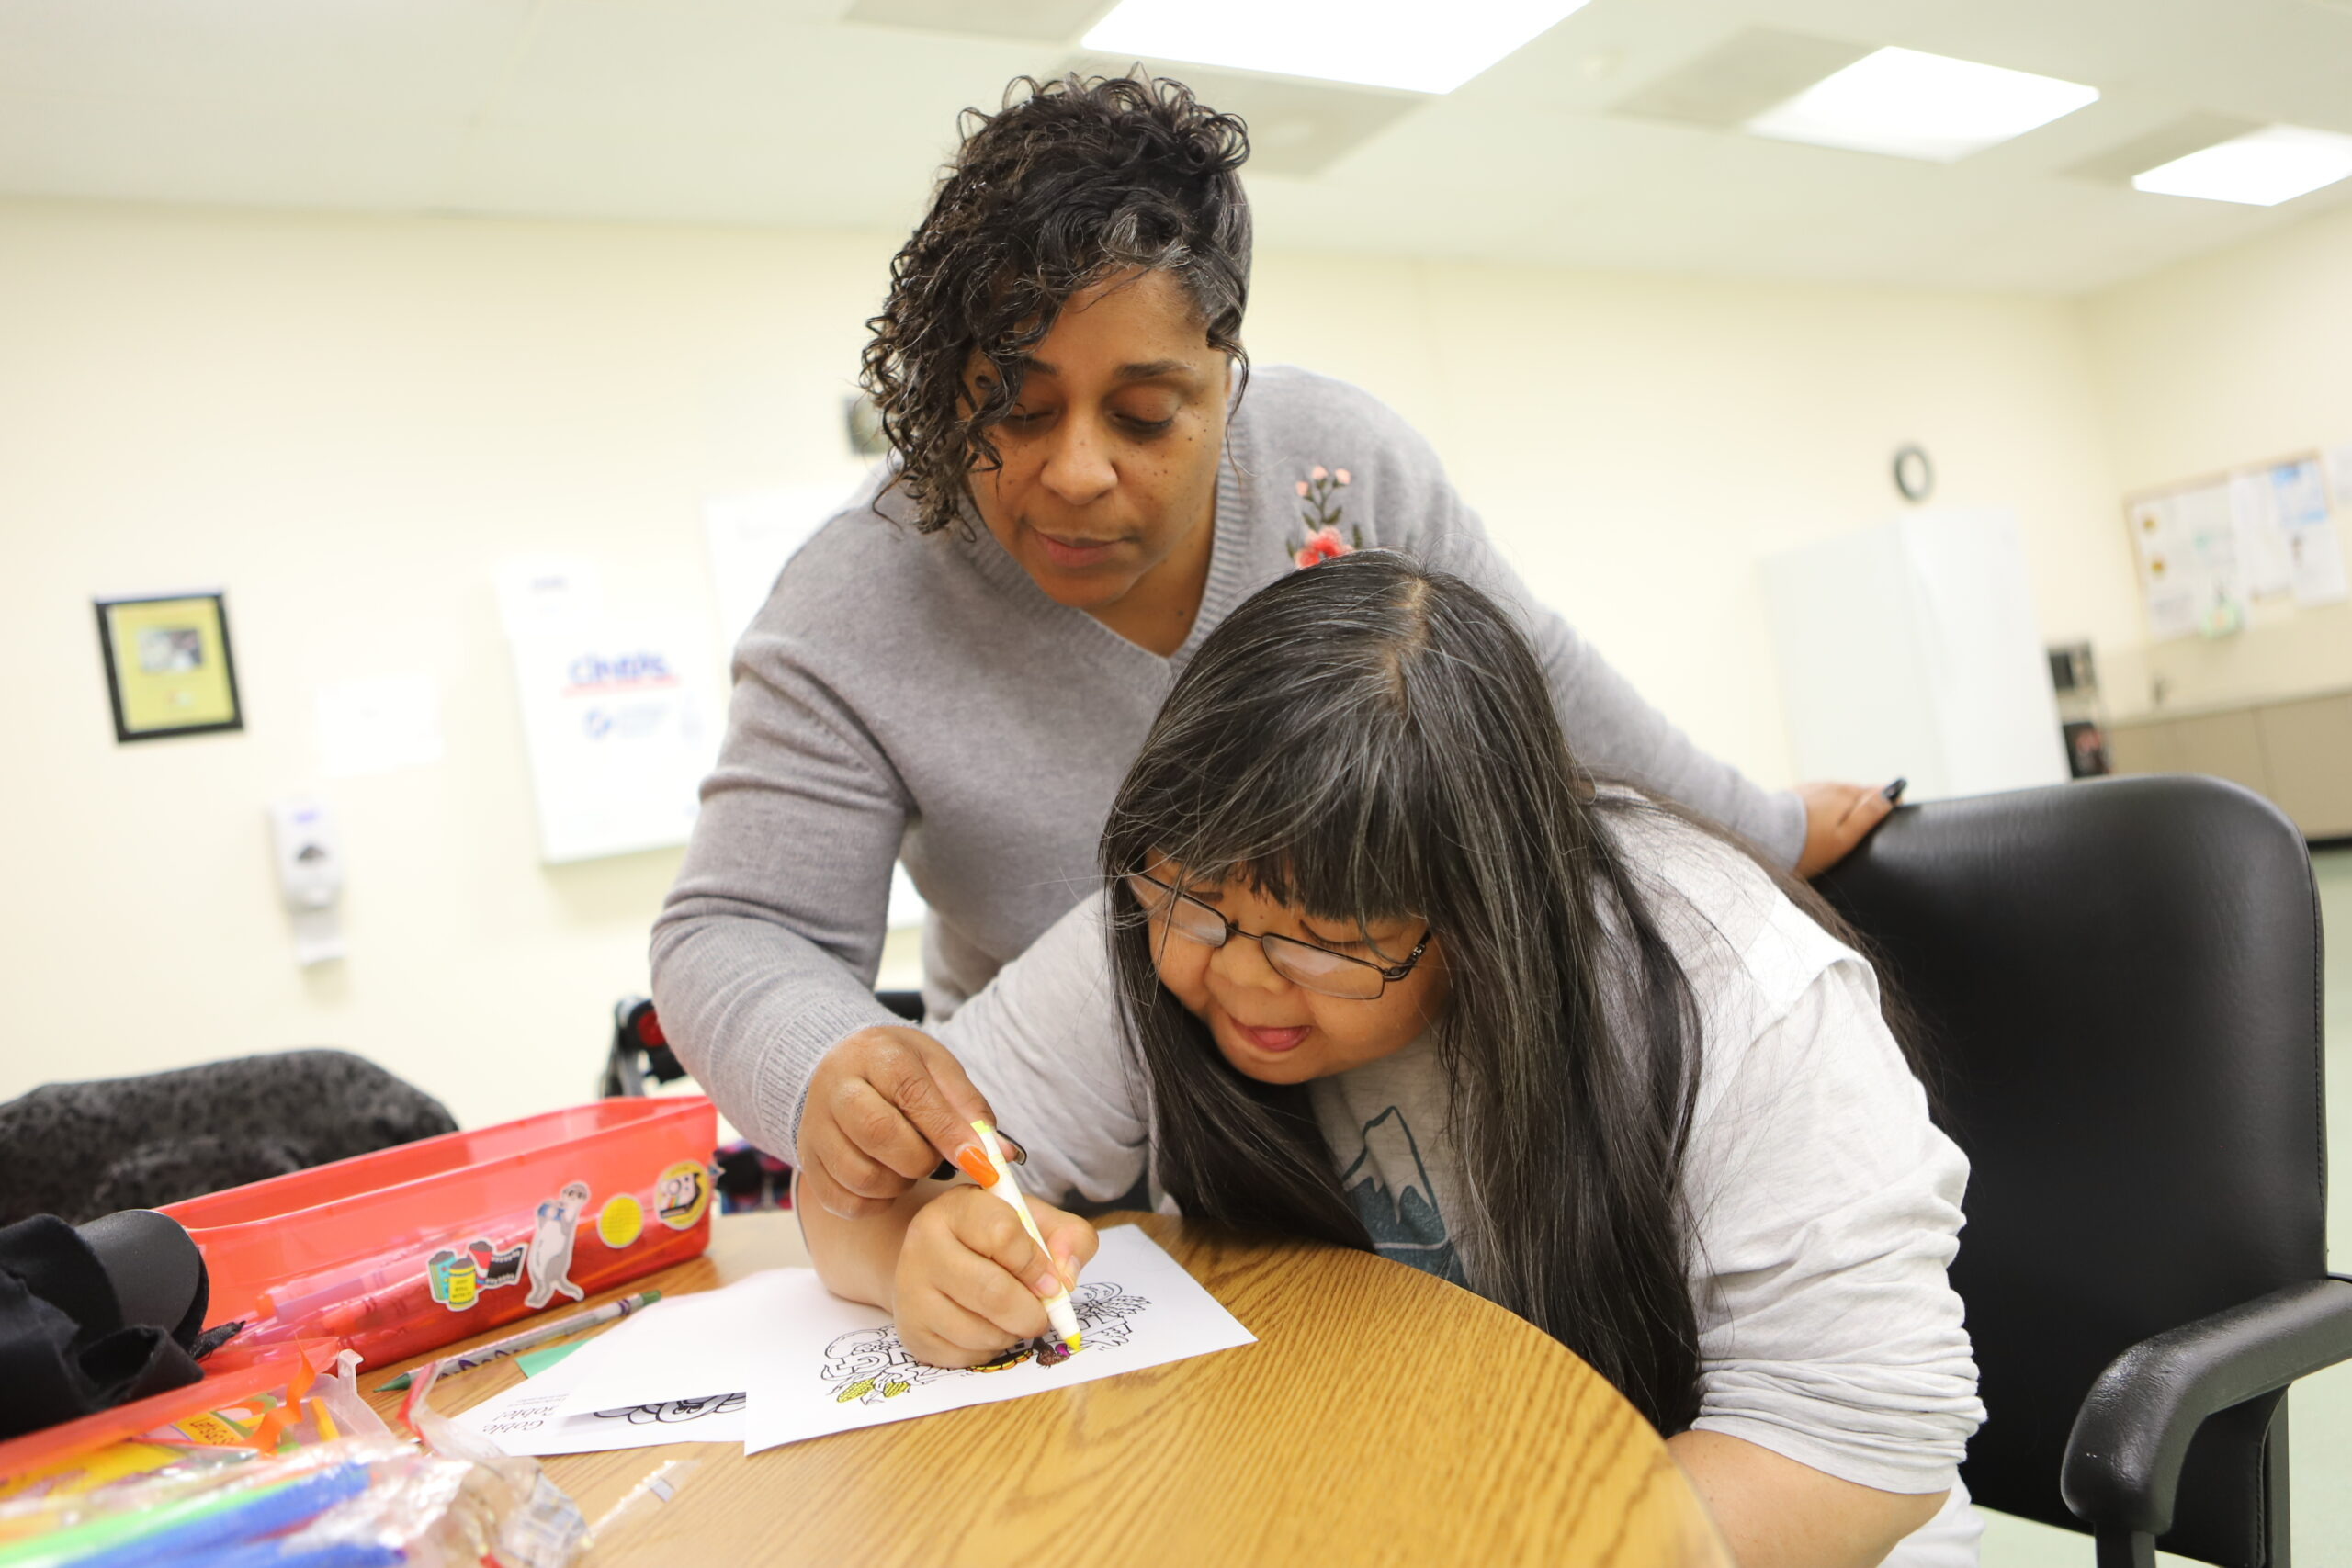 woman looking down helping another person write